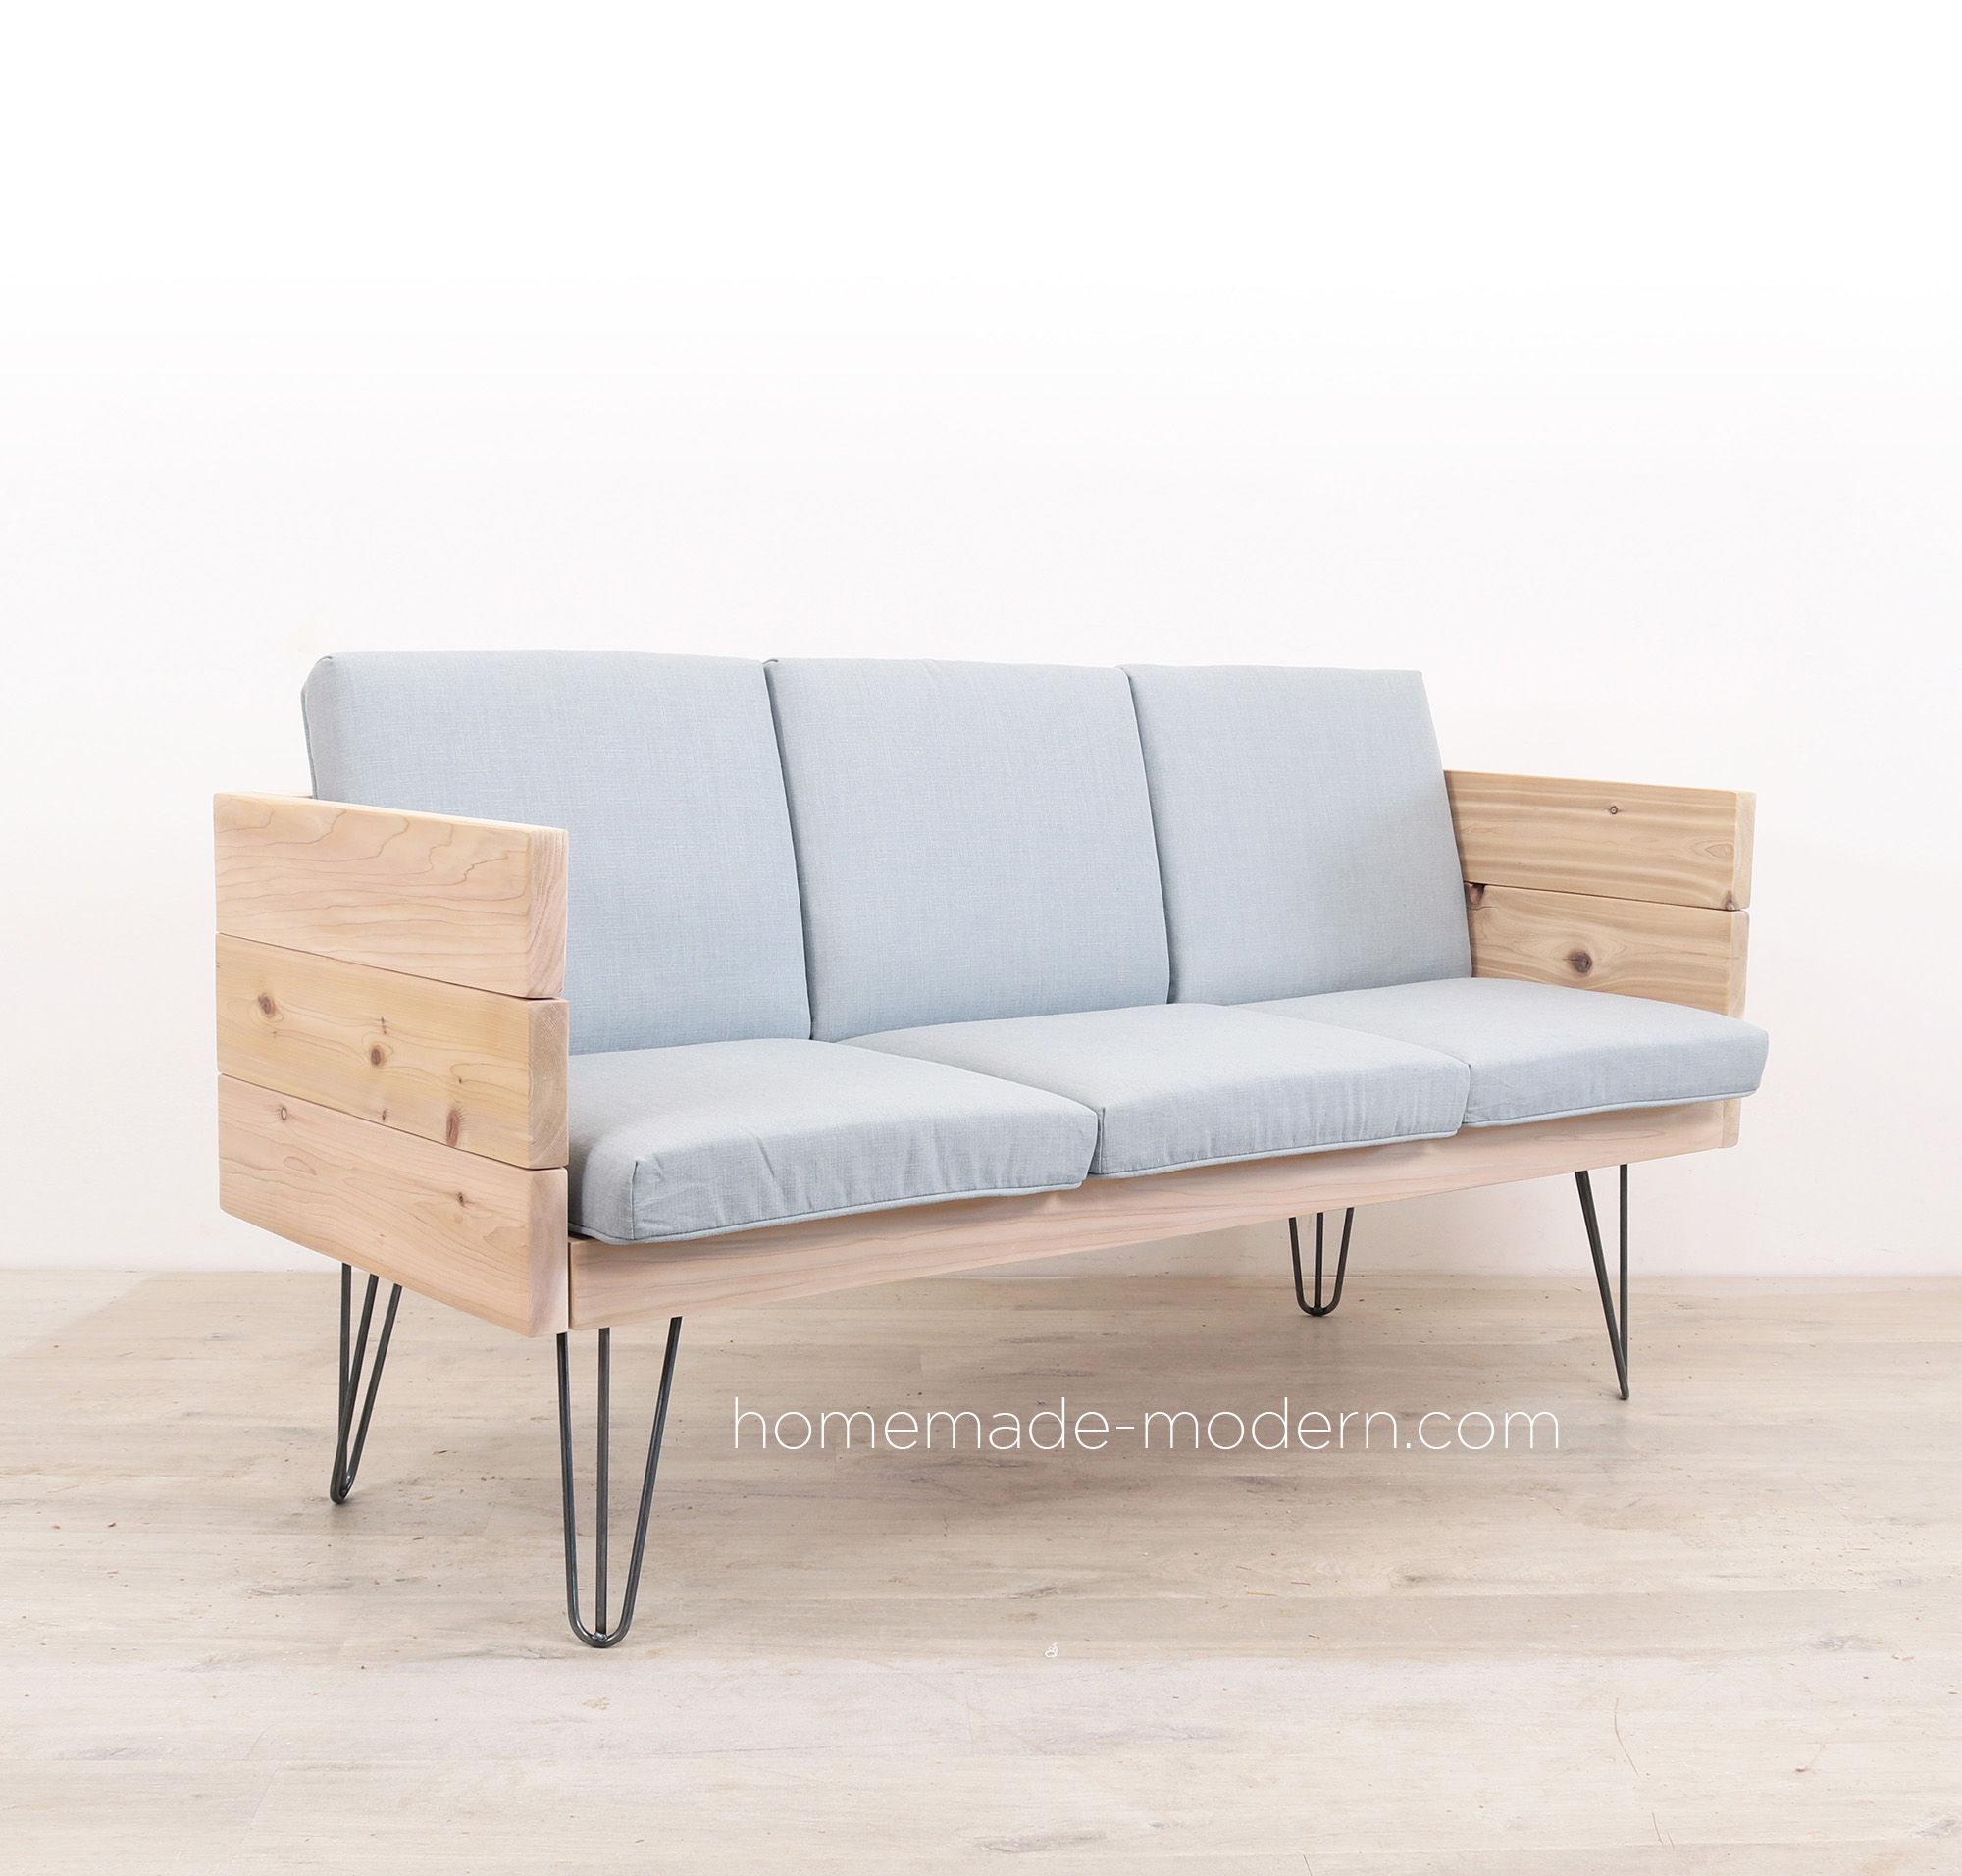 http://www.homemade-modern.com/wp-content/uploads/2019/04/outdoorsofa2-final2.jpg